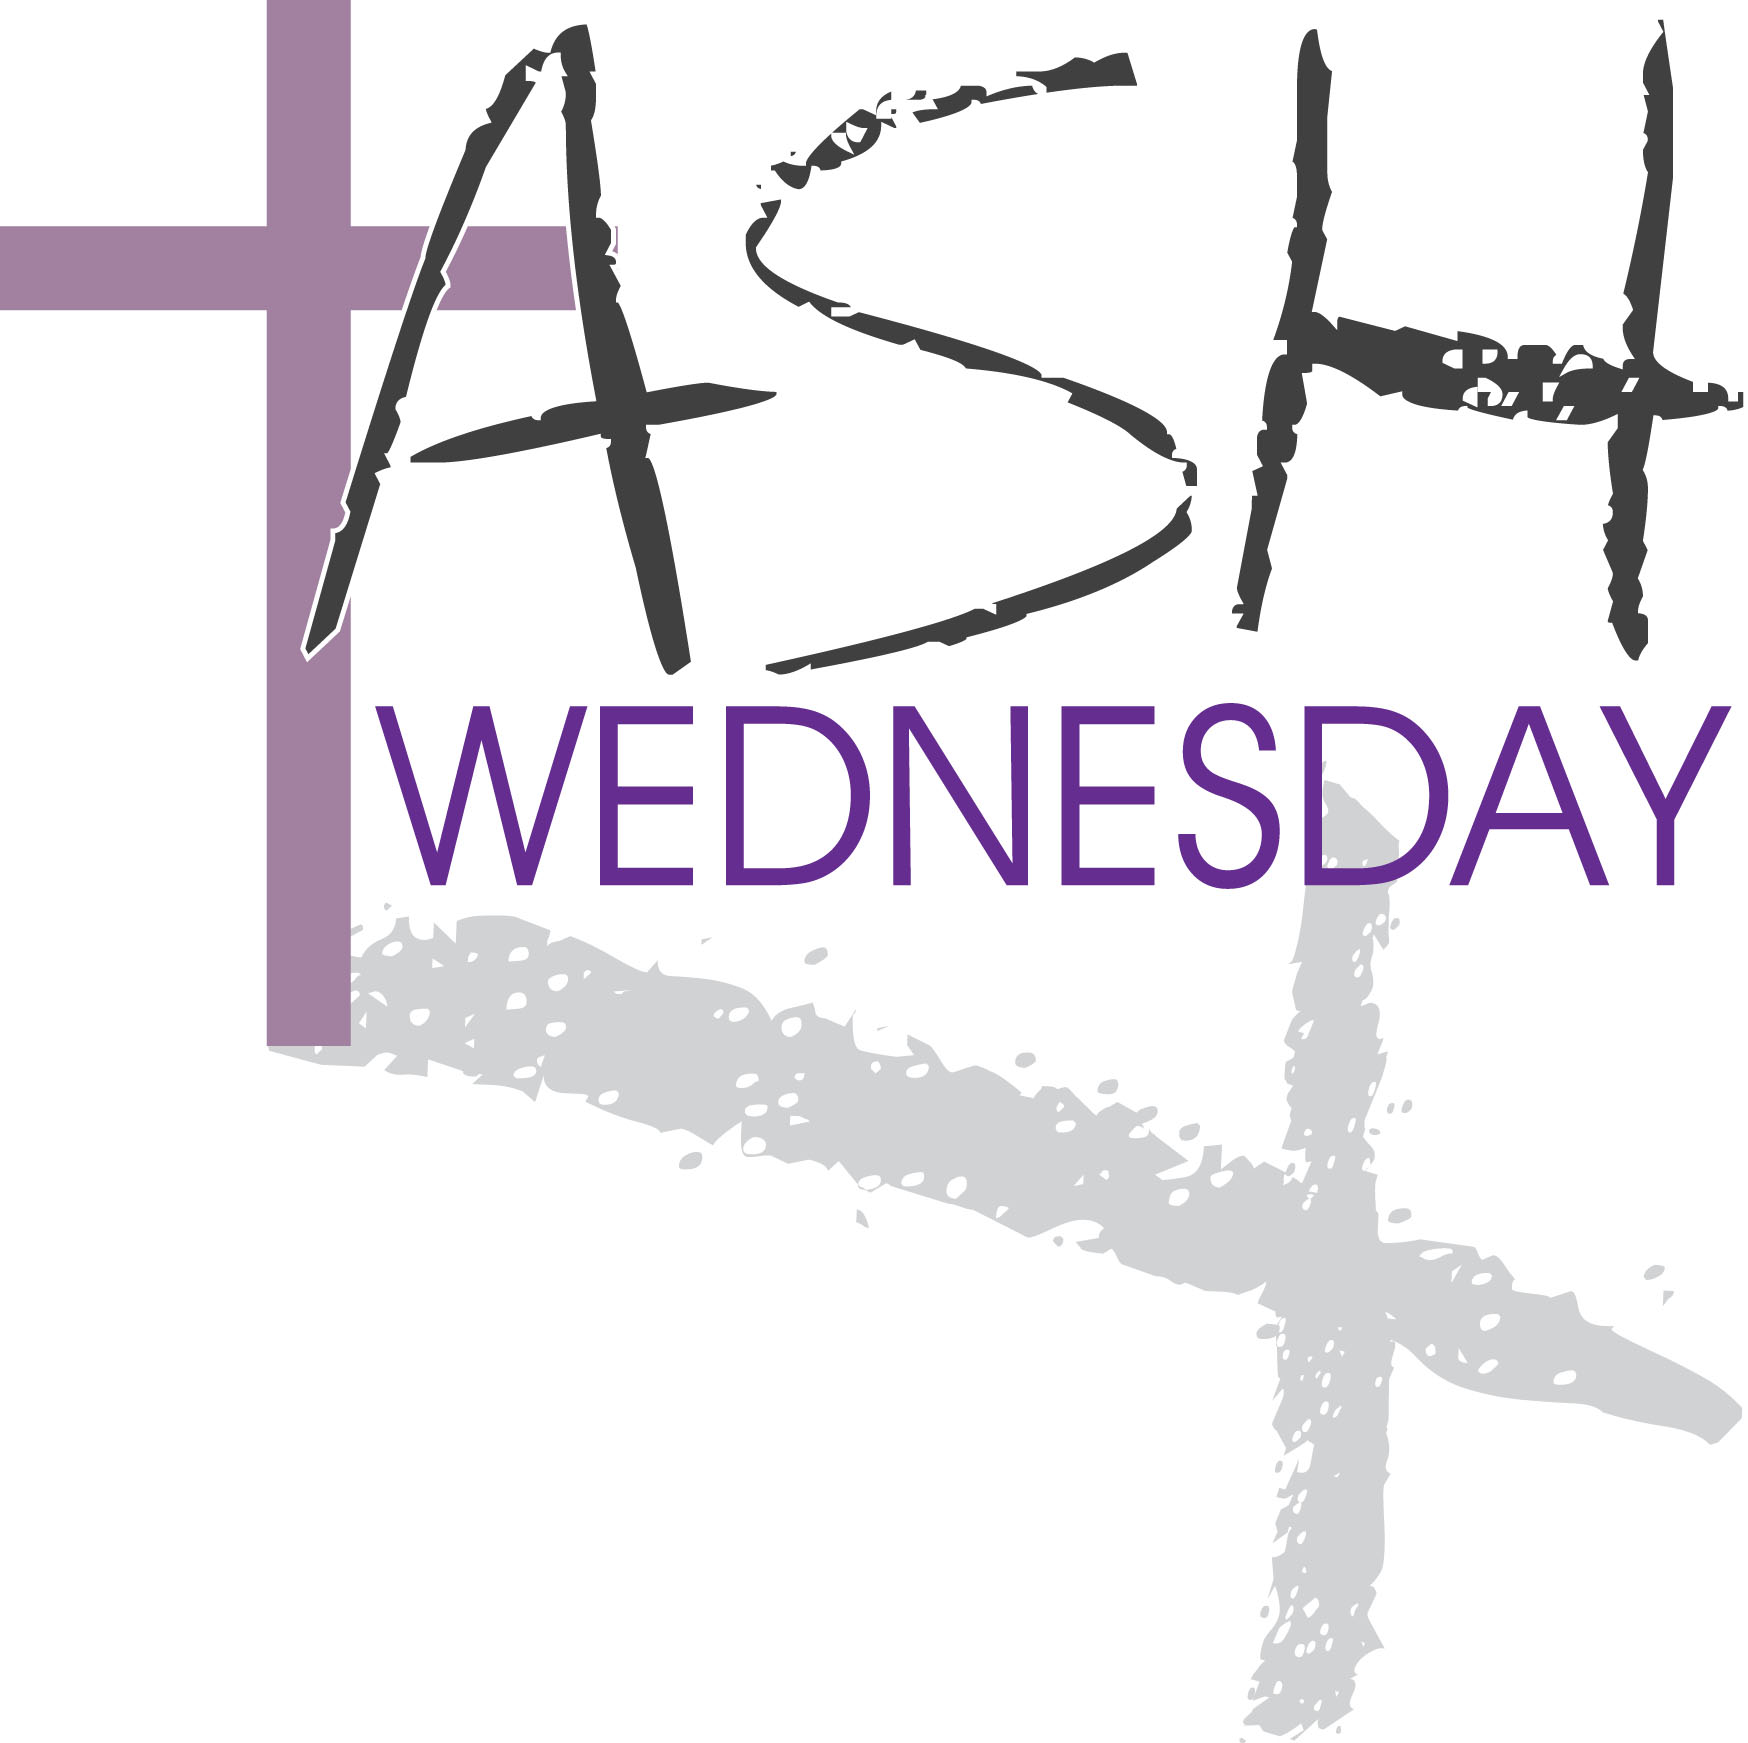 Ash Wednesday clipart - Ash Wednesday Clipart